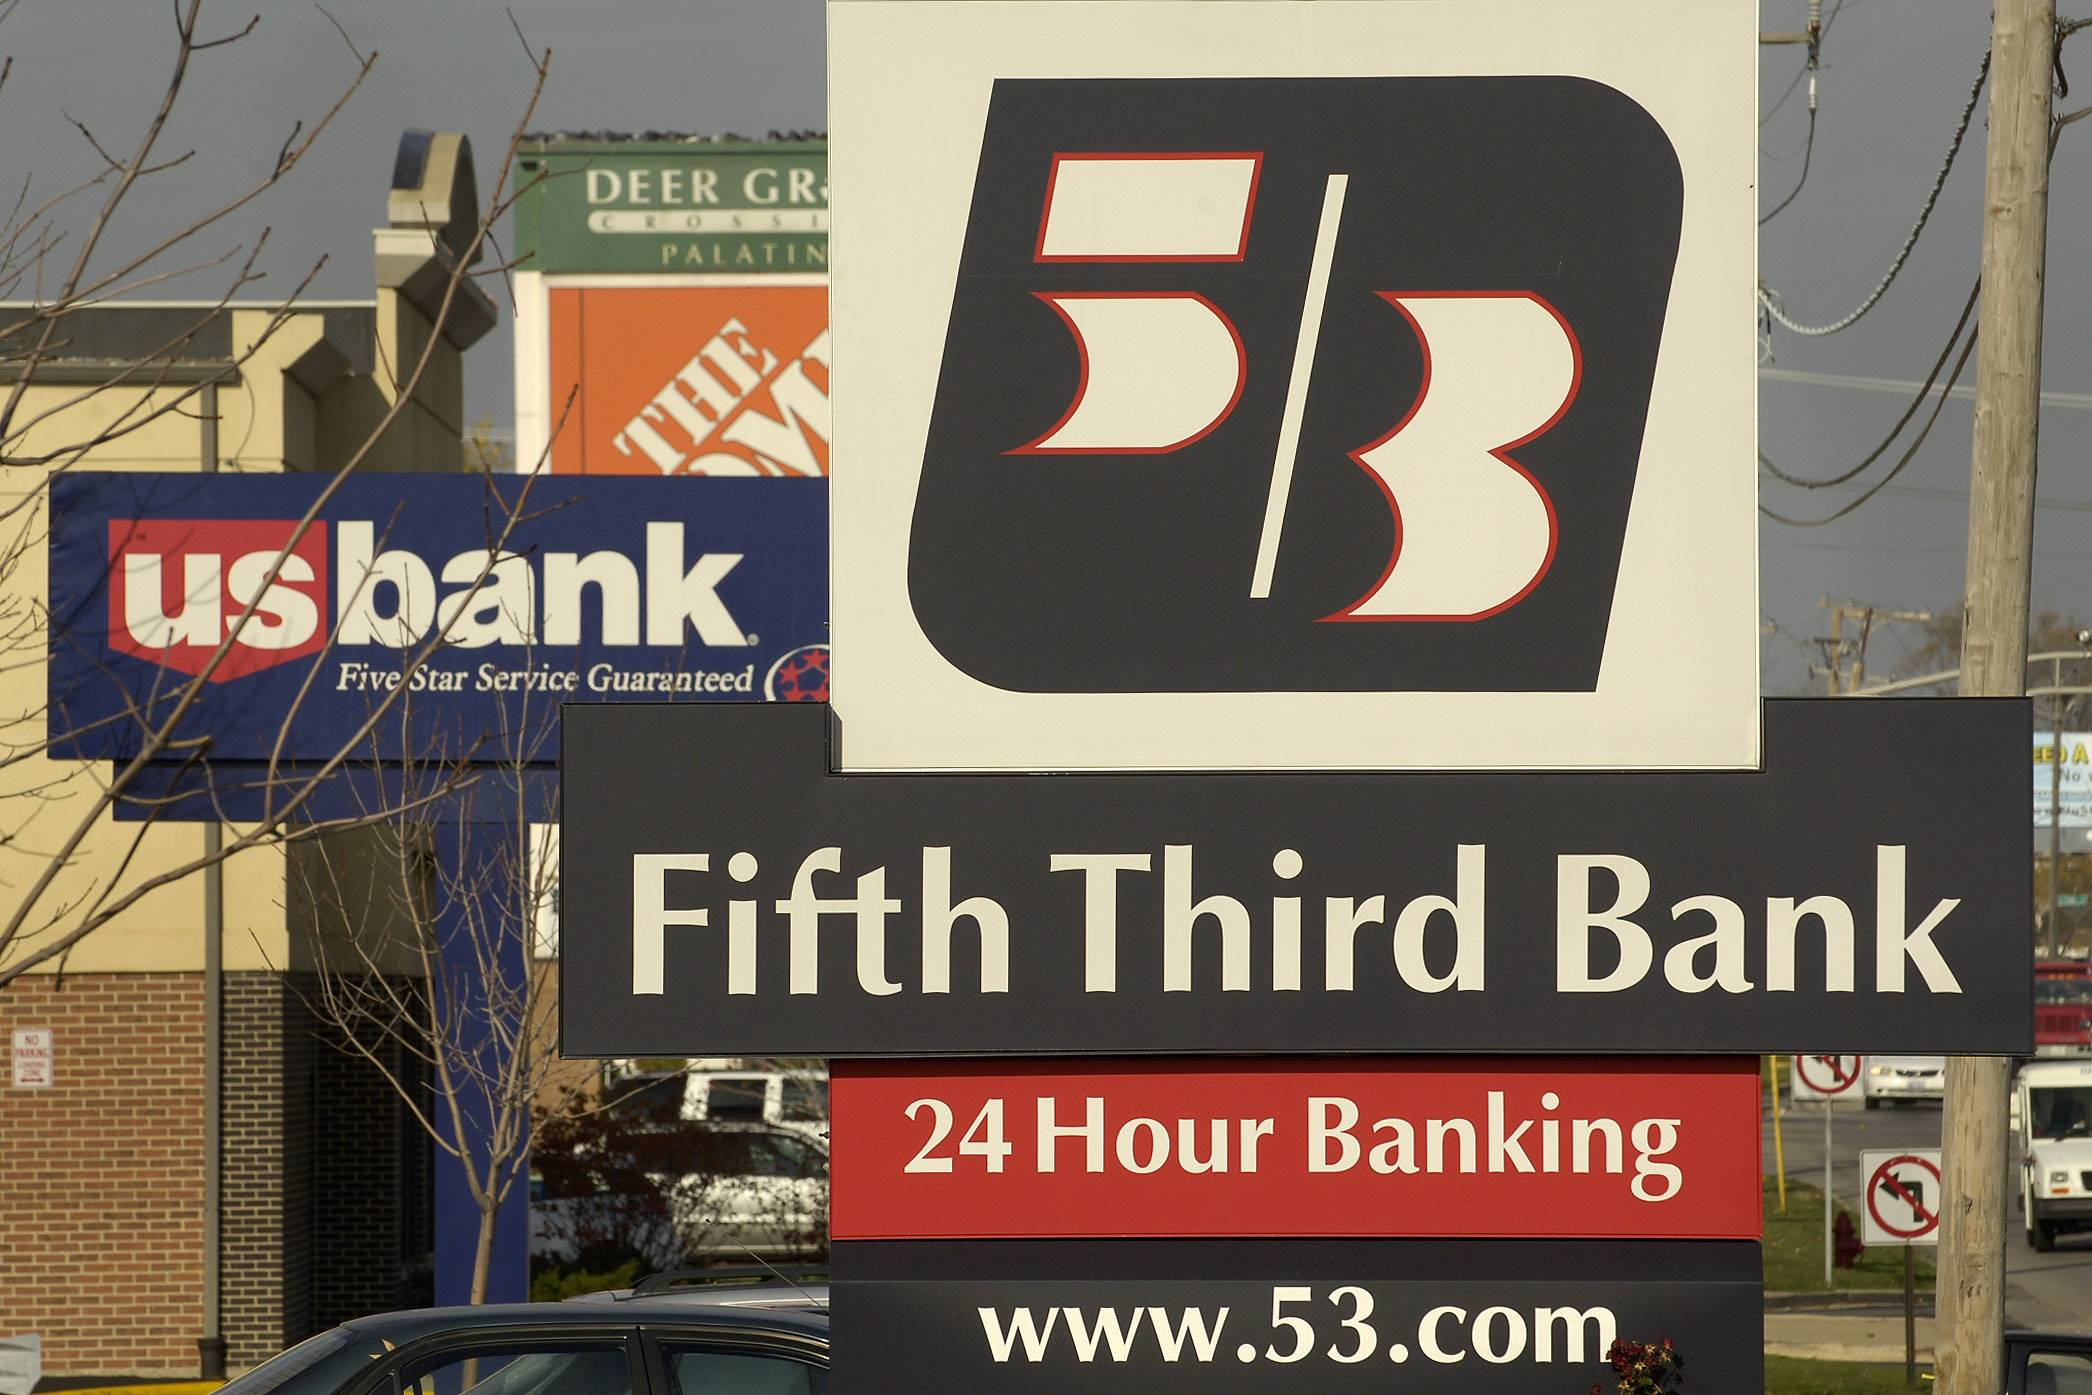 MB Financial shareholders today approved the company's merger with Fifth Third Bancorp.